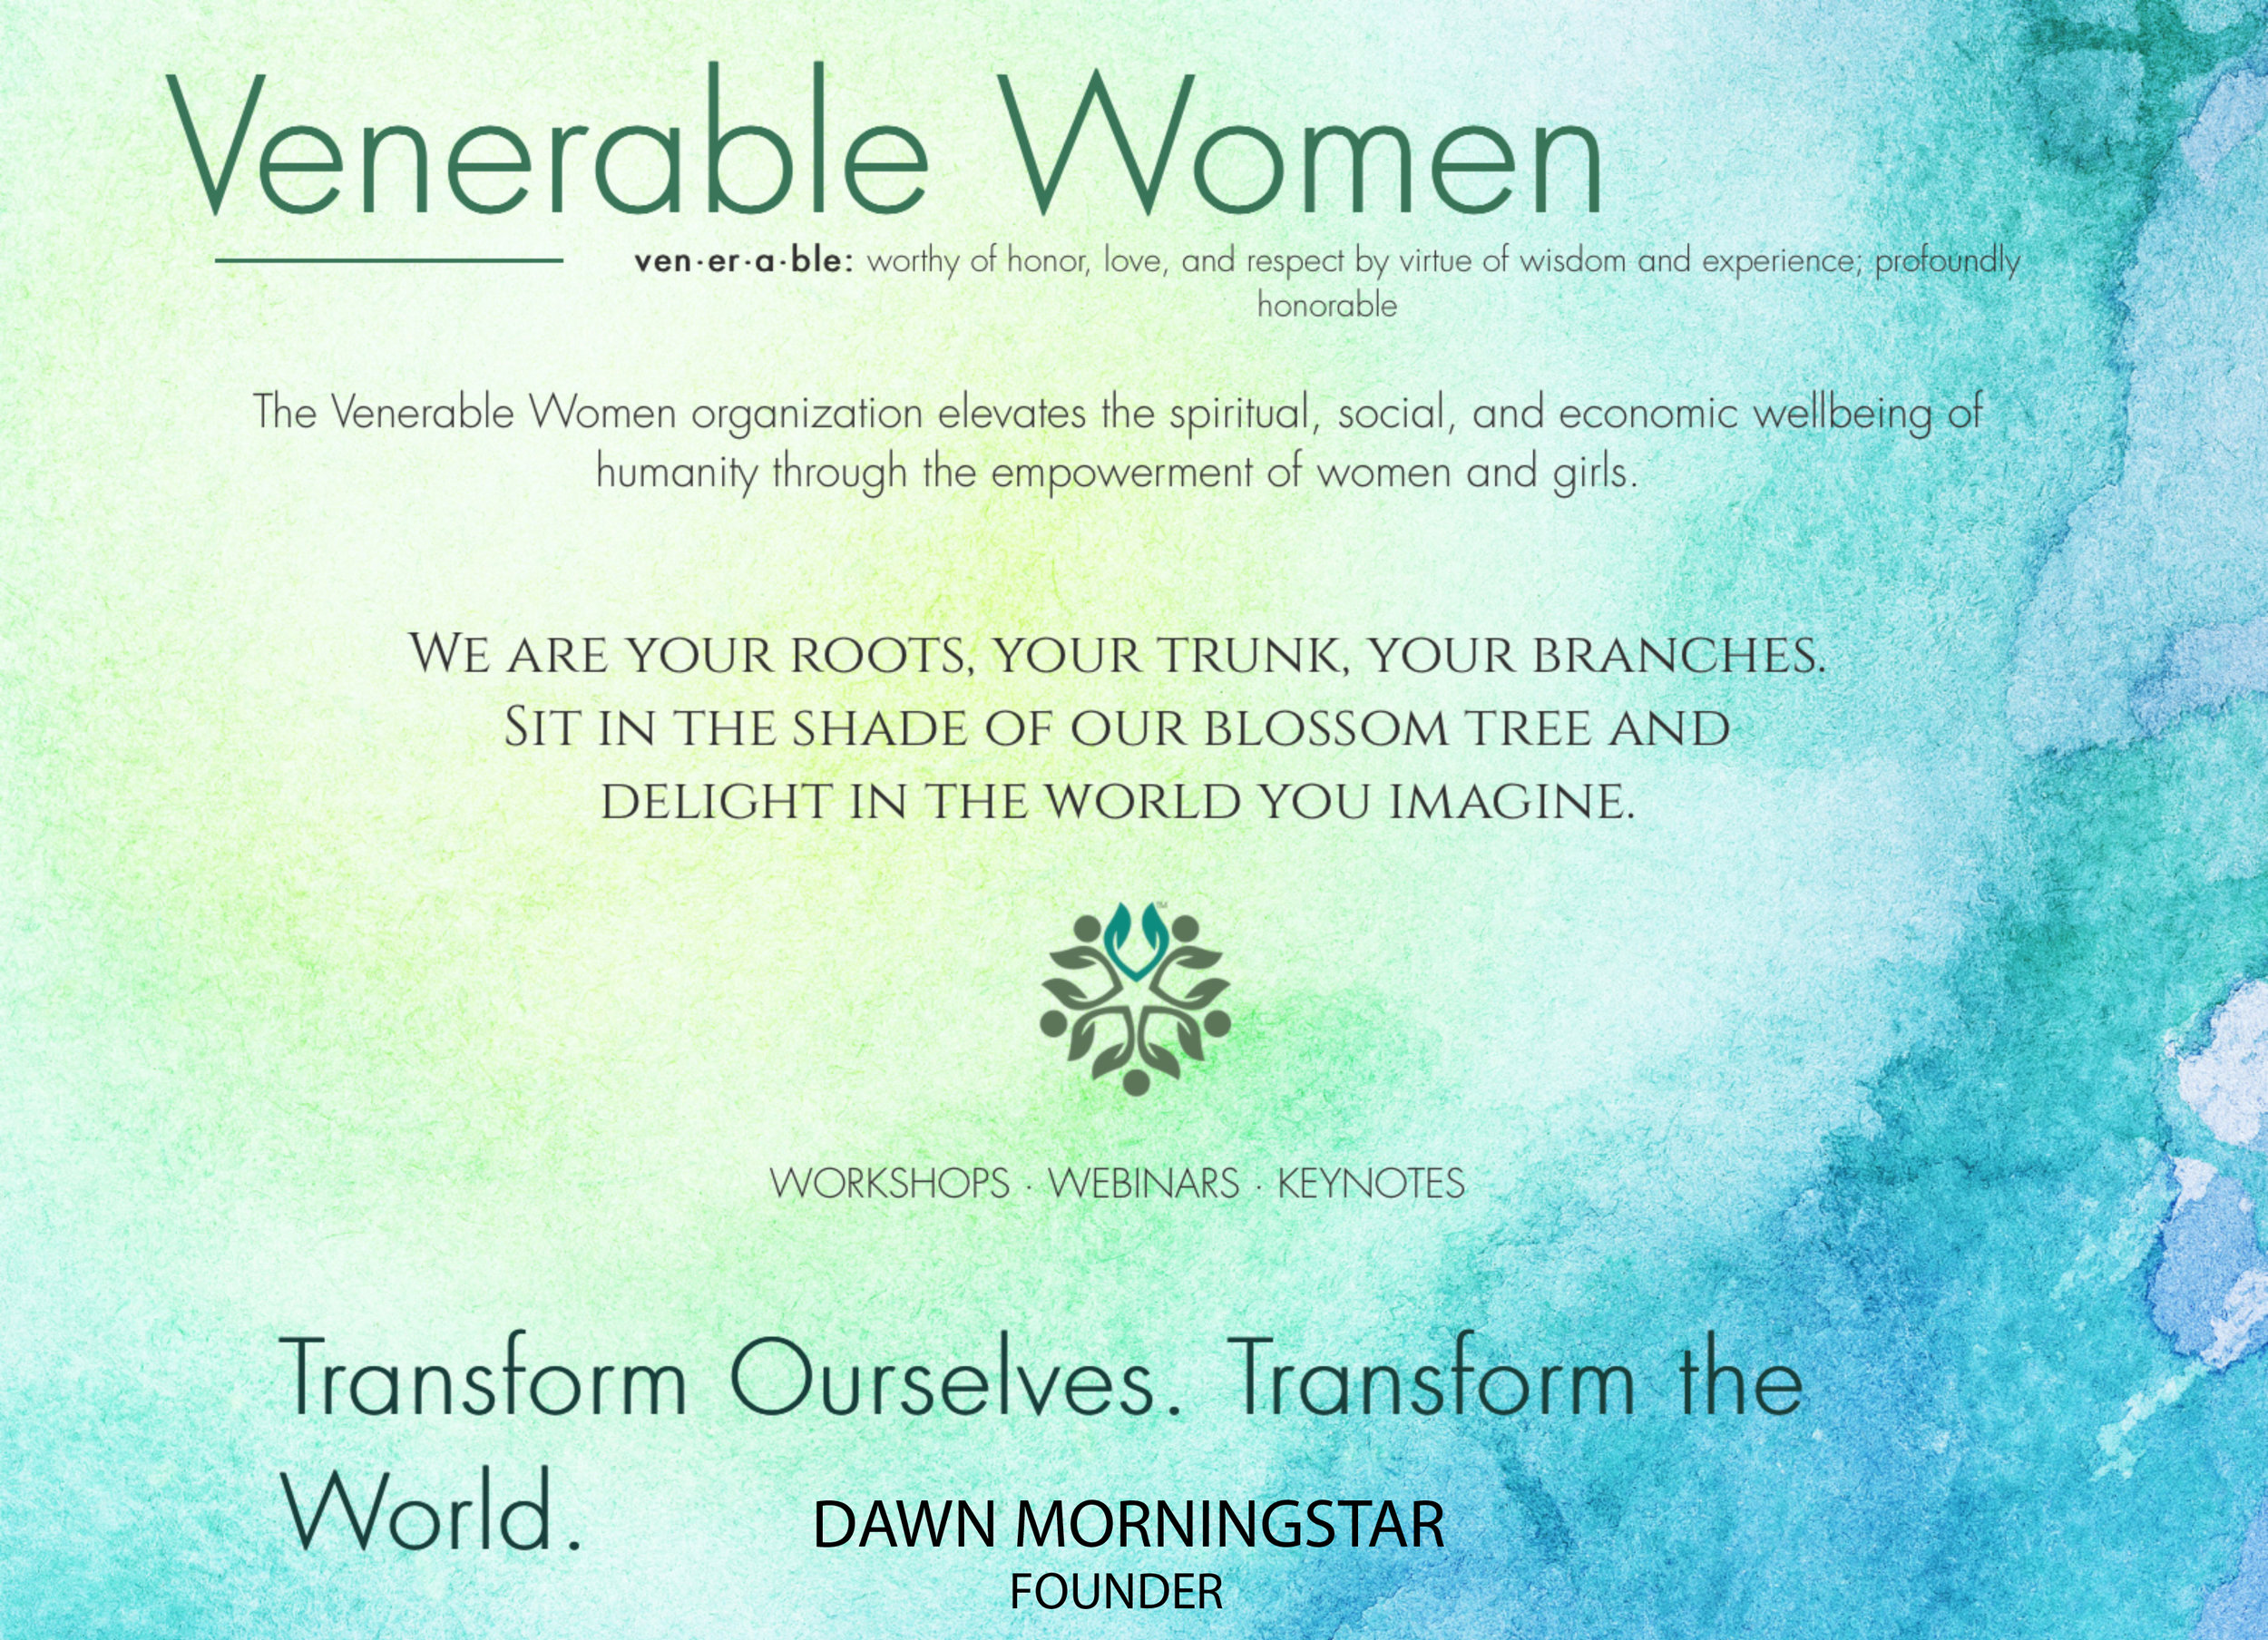 venerable women web graphic.jpg